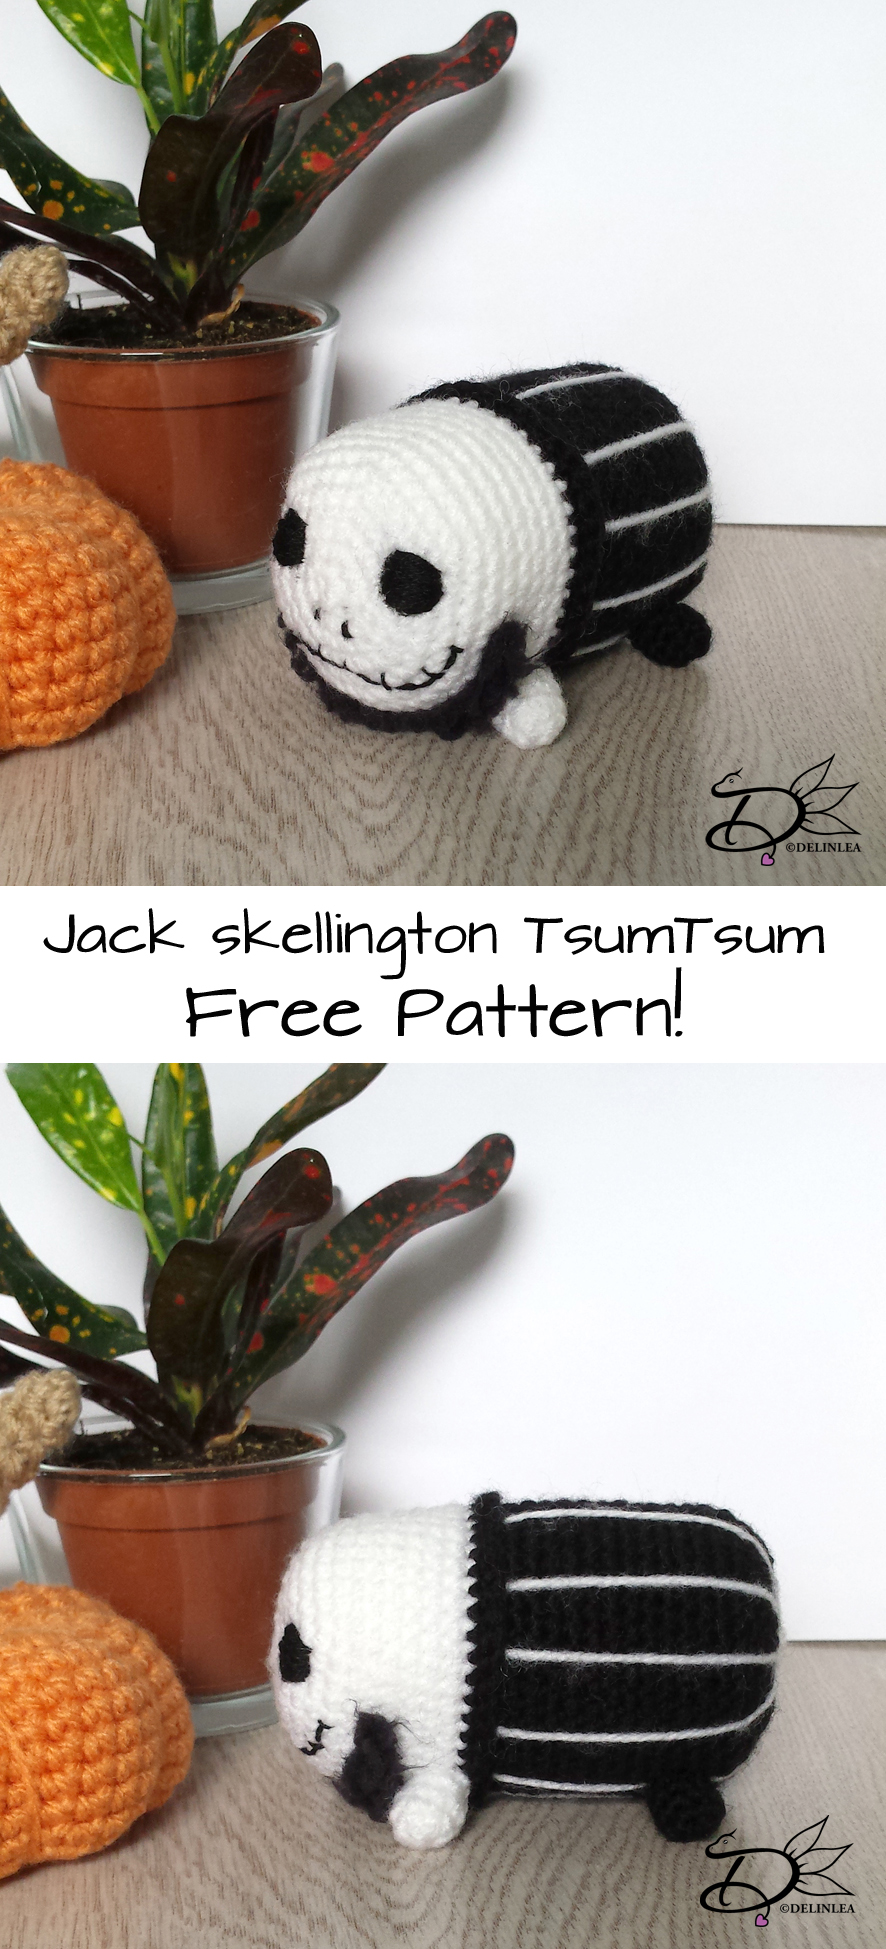 Jack Skellington Archives • Spin a Yarn Crochet | 1949x886